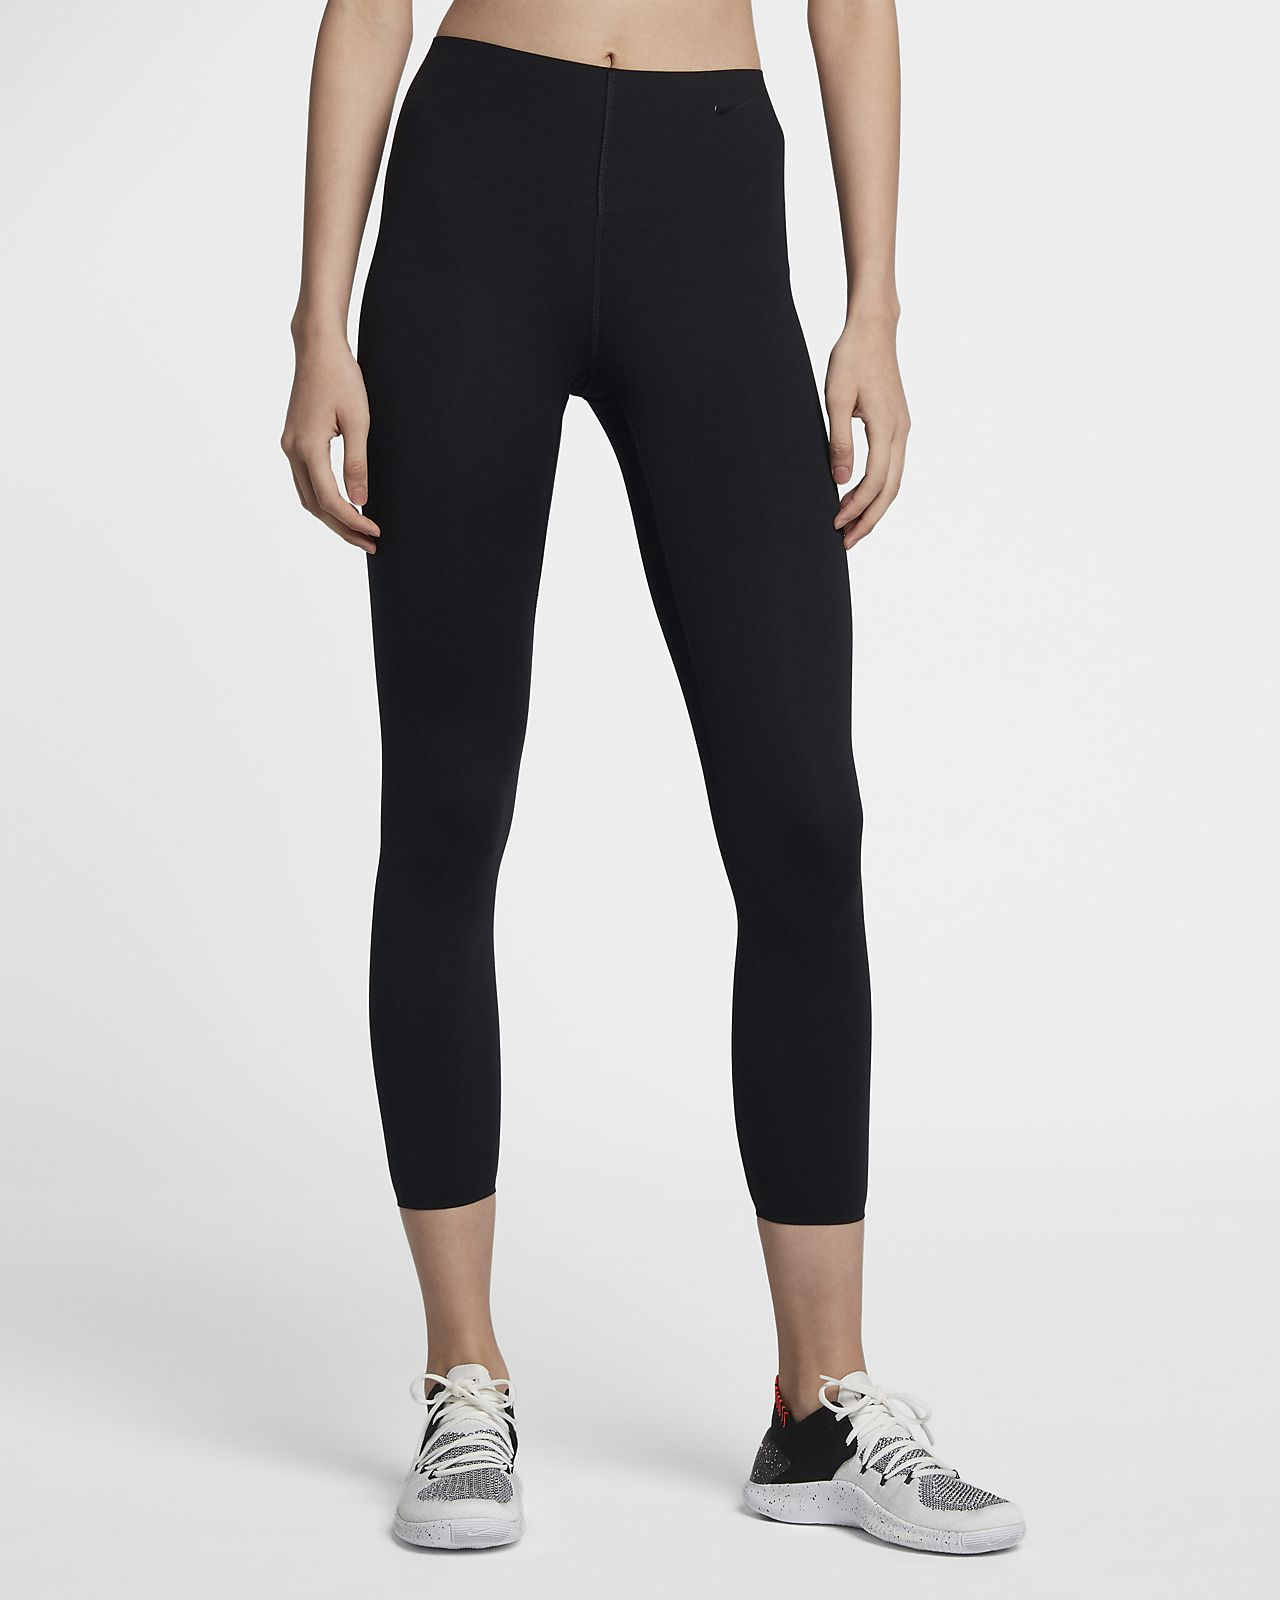 Nike Sculpt Women's 7/8 Yoga Training Tights